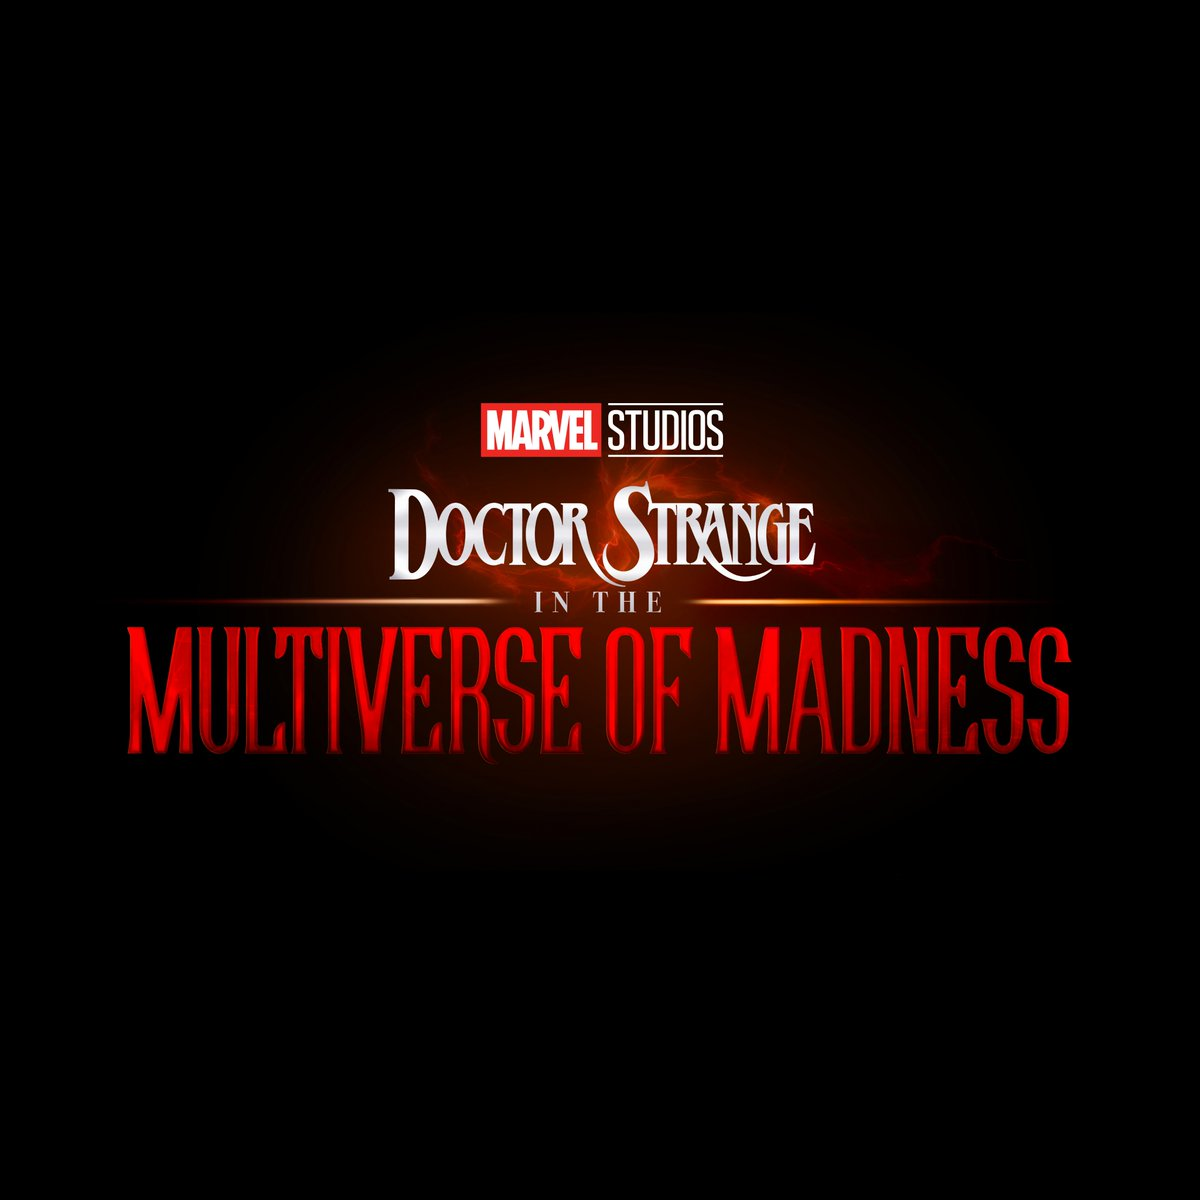 marvel-studios-announces-phase-4-at-comic-con-here-are-all-the-awesome-details-and-logos-fantastic-four-and-blade-included9